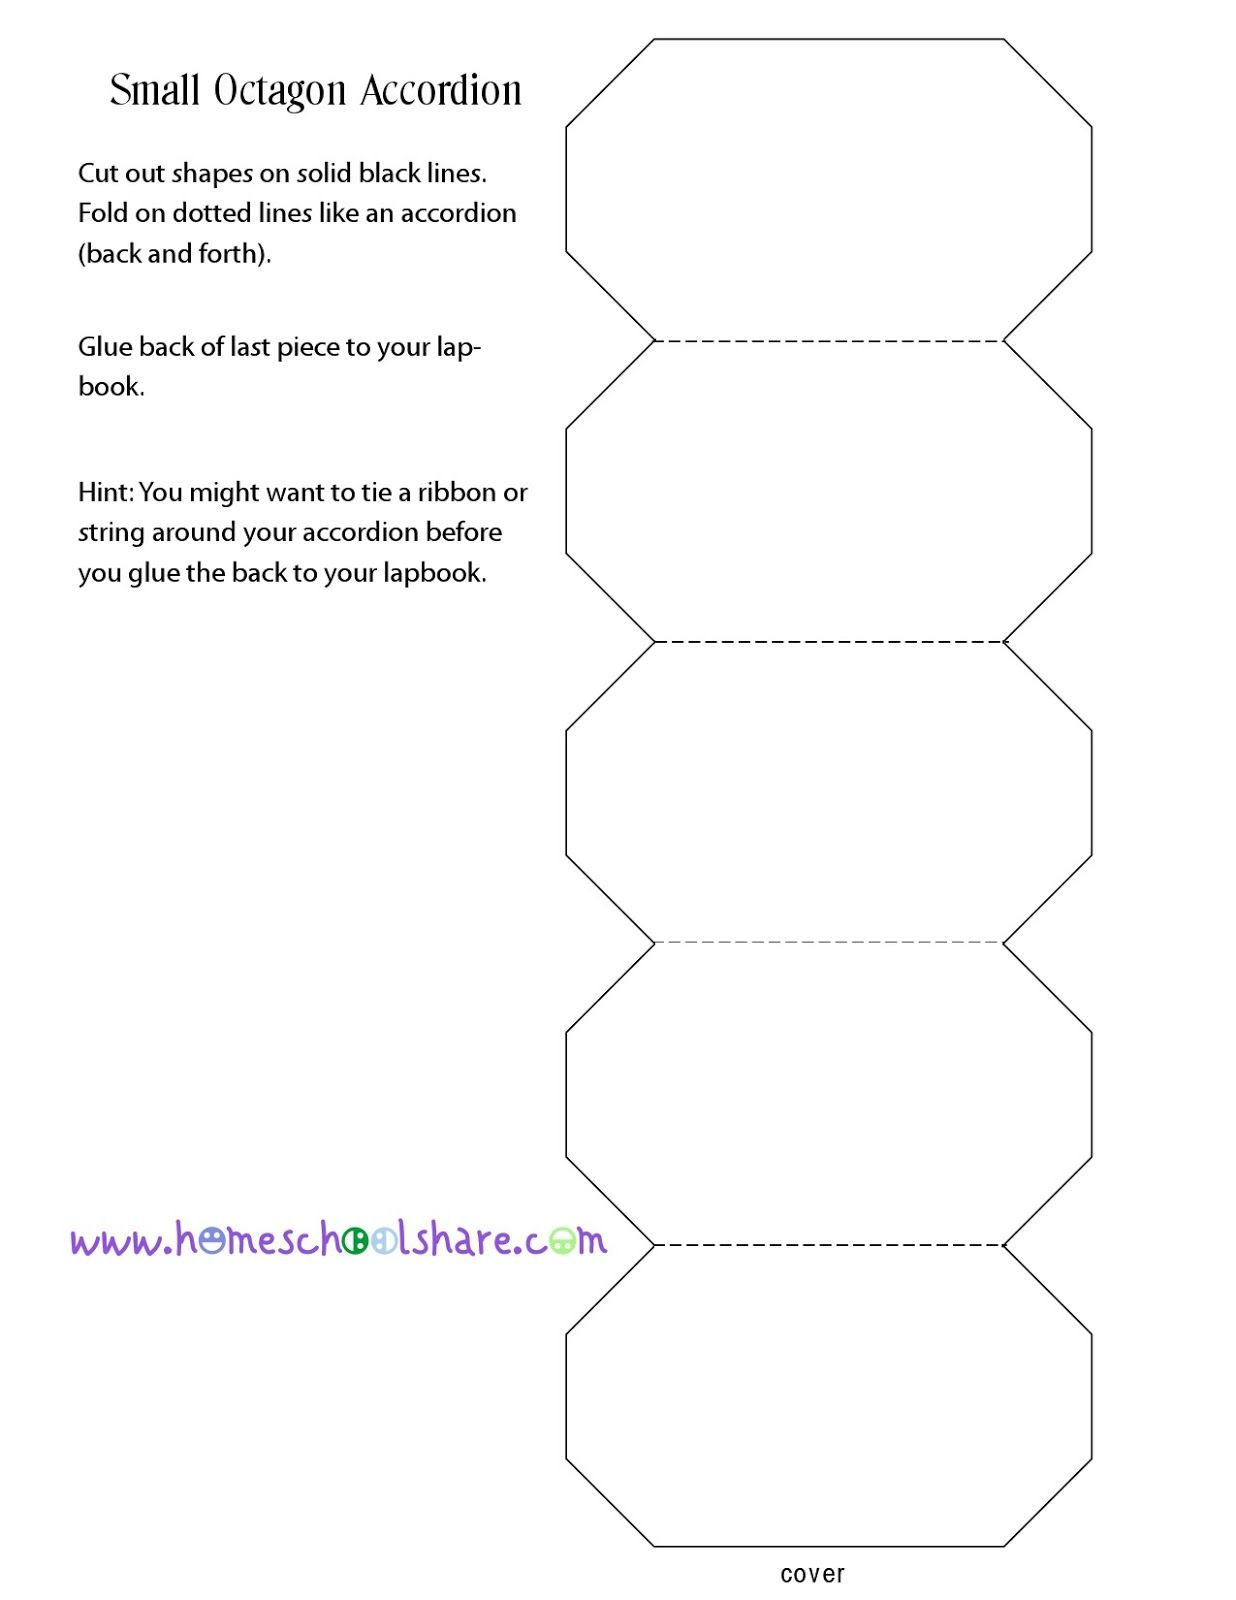 Lapbook Templates 2019 Click More For Pictures Lapbook Creativos Lapbook Ideas Lapbook Printable Lap Book Templates Learning English For Kids Lapbook